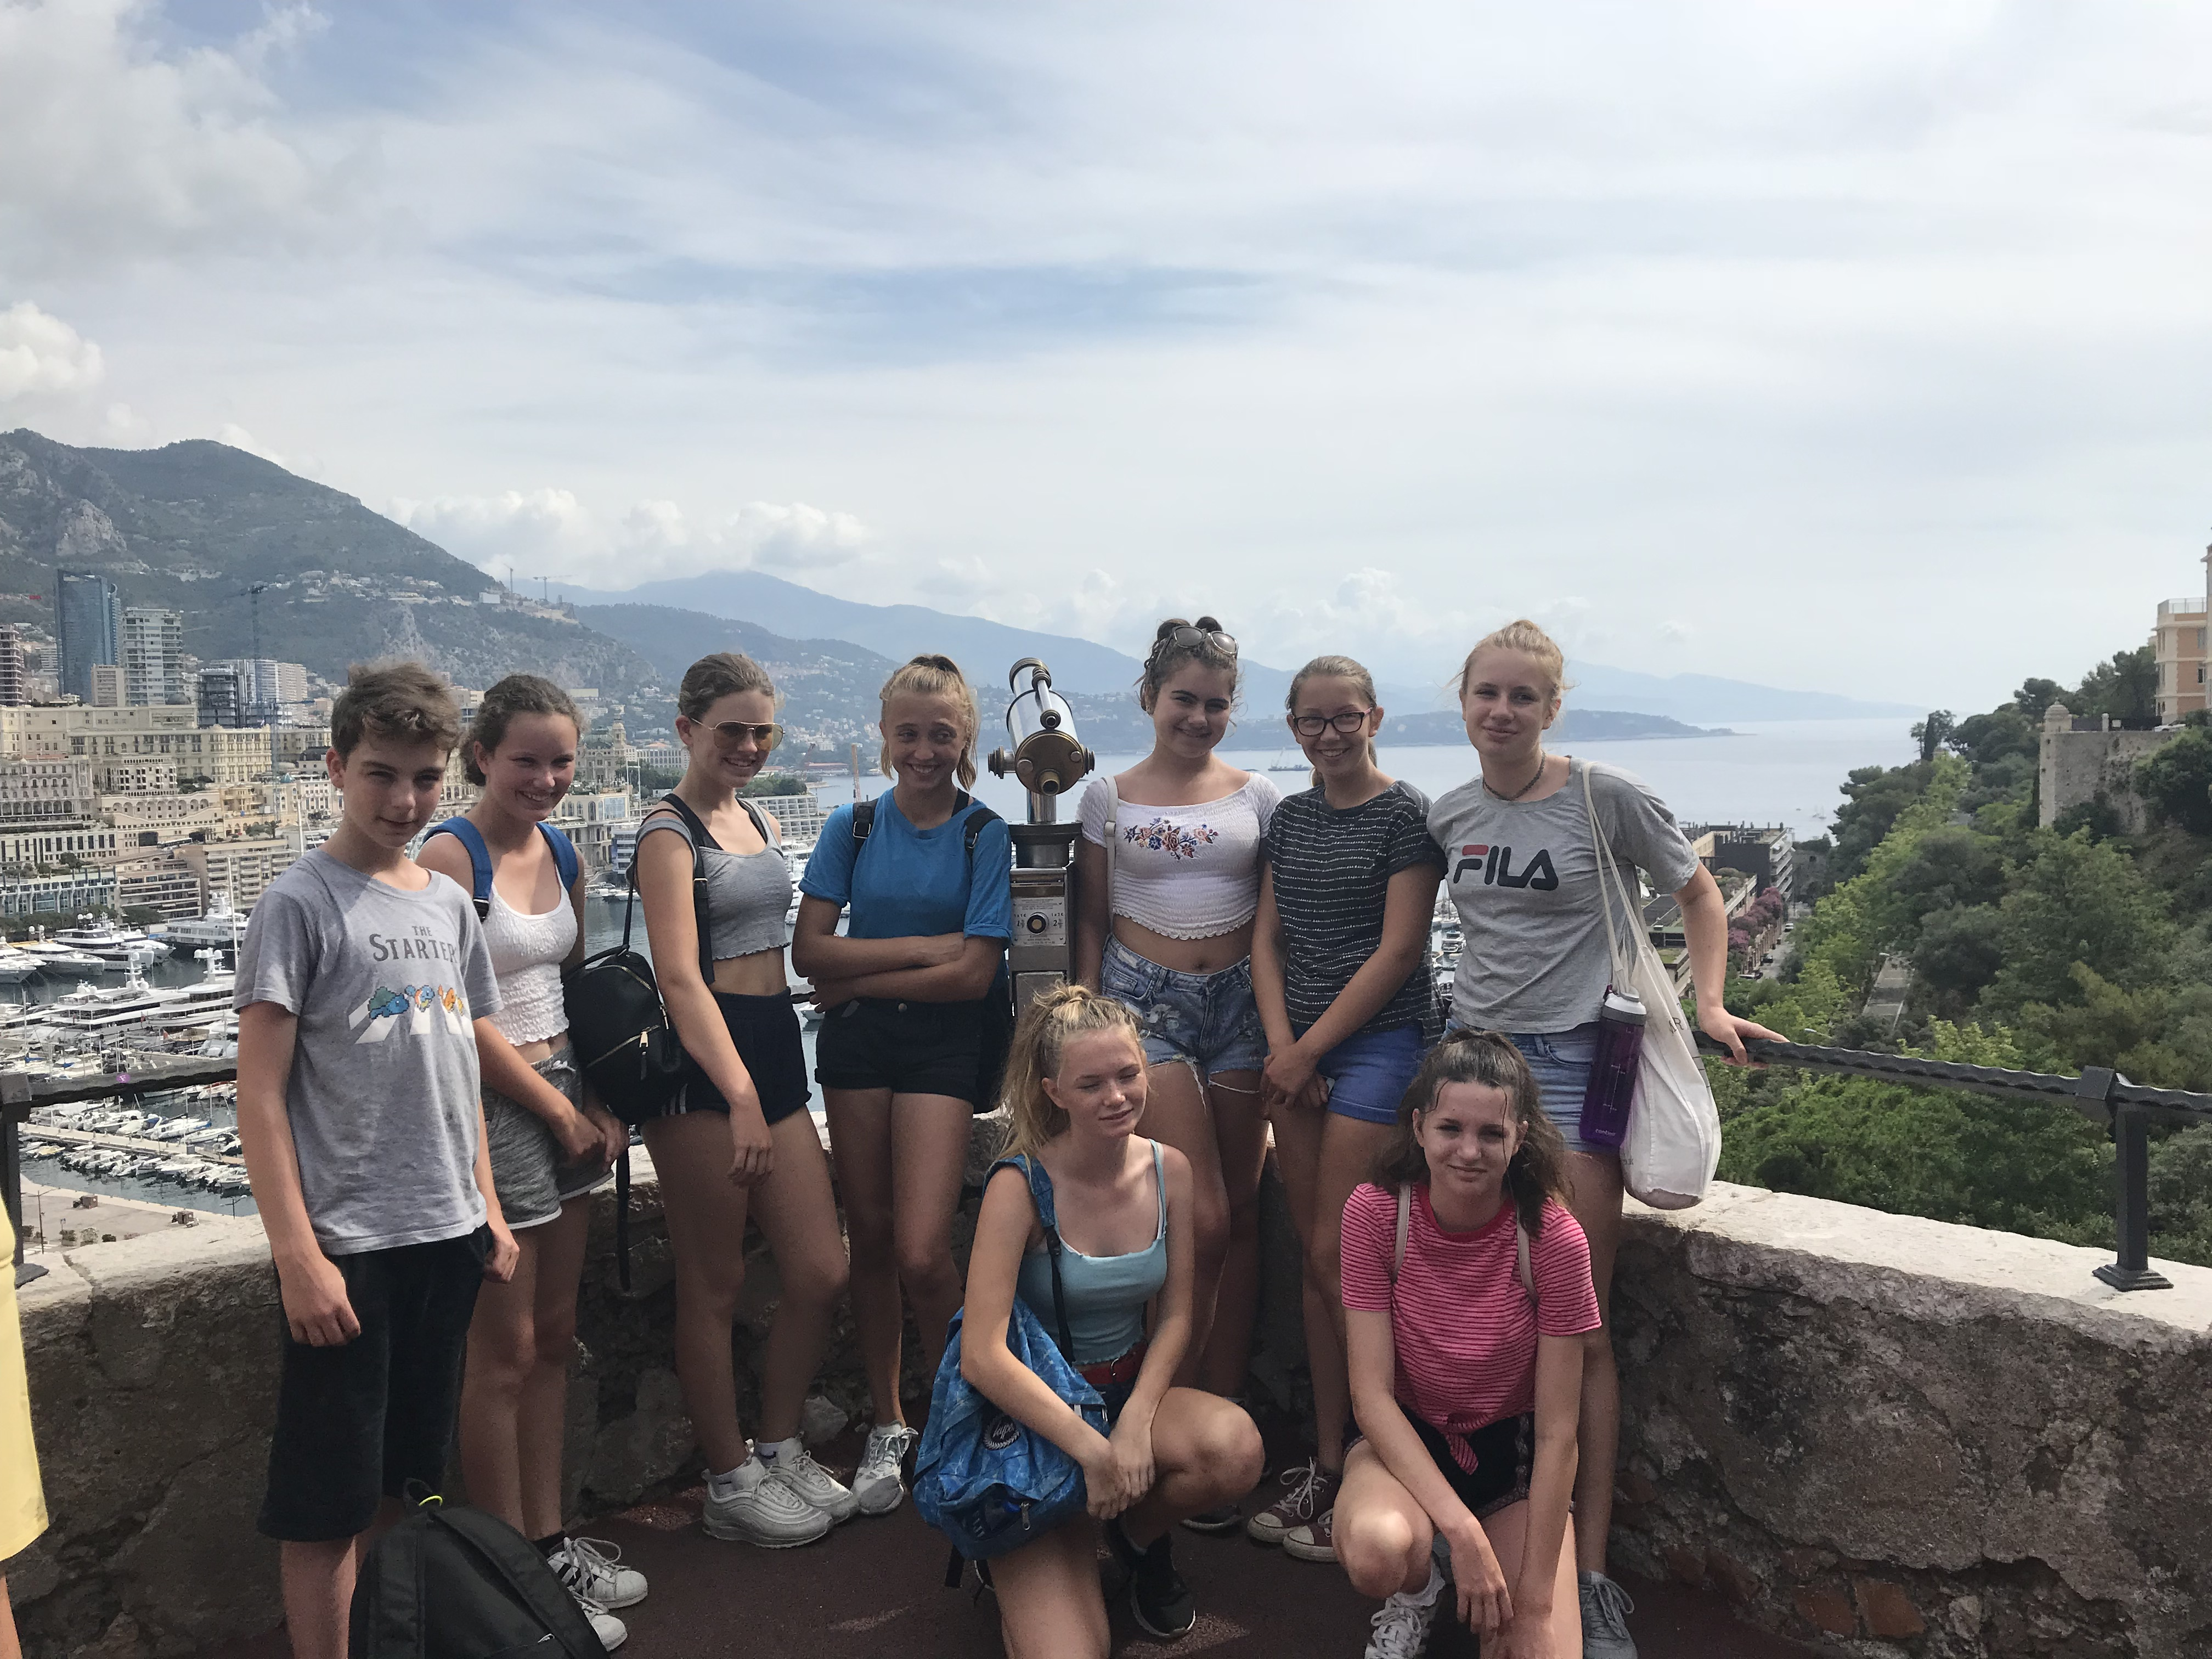 LOGS students actively involved in conservation in Italy